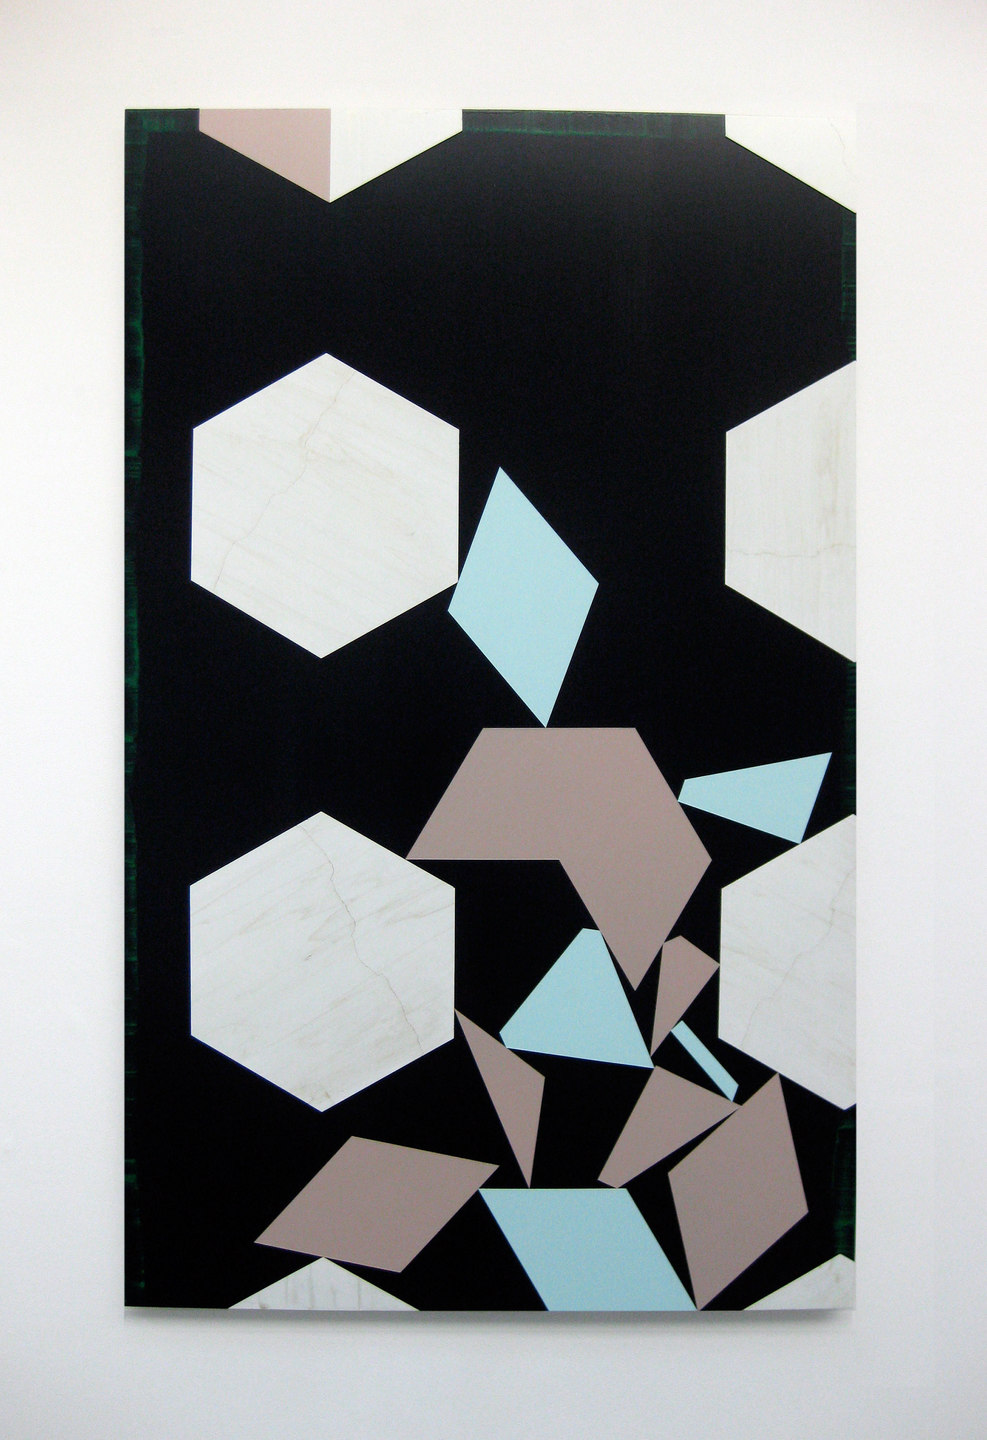 Andy Jackson, Set 1 (Bin), 2010, Acrylic and Metallic Acrylic on Board, (h.1610mm x w.996mm), Cell Project Space